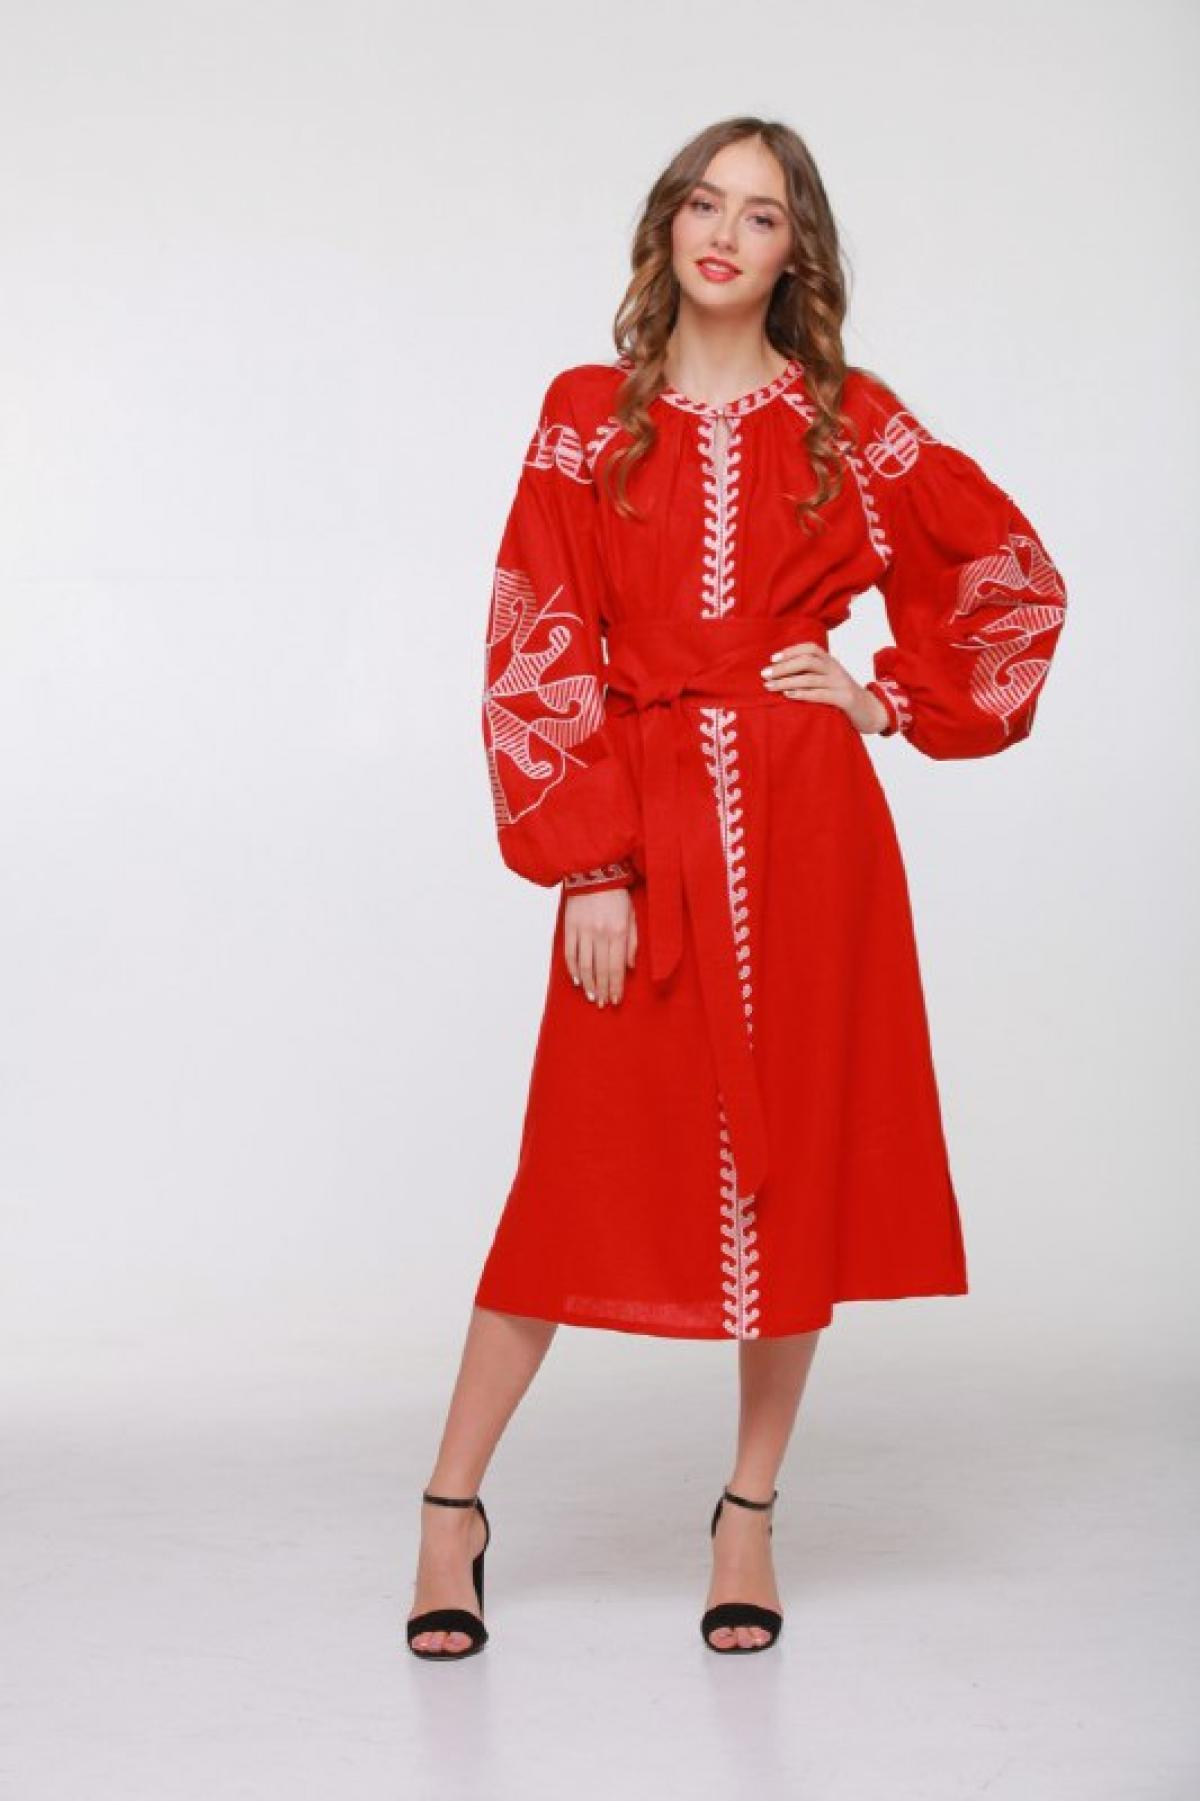 Red embroidered dress with embroidery on sleeves and chest